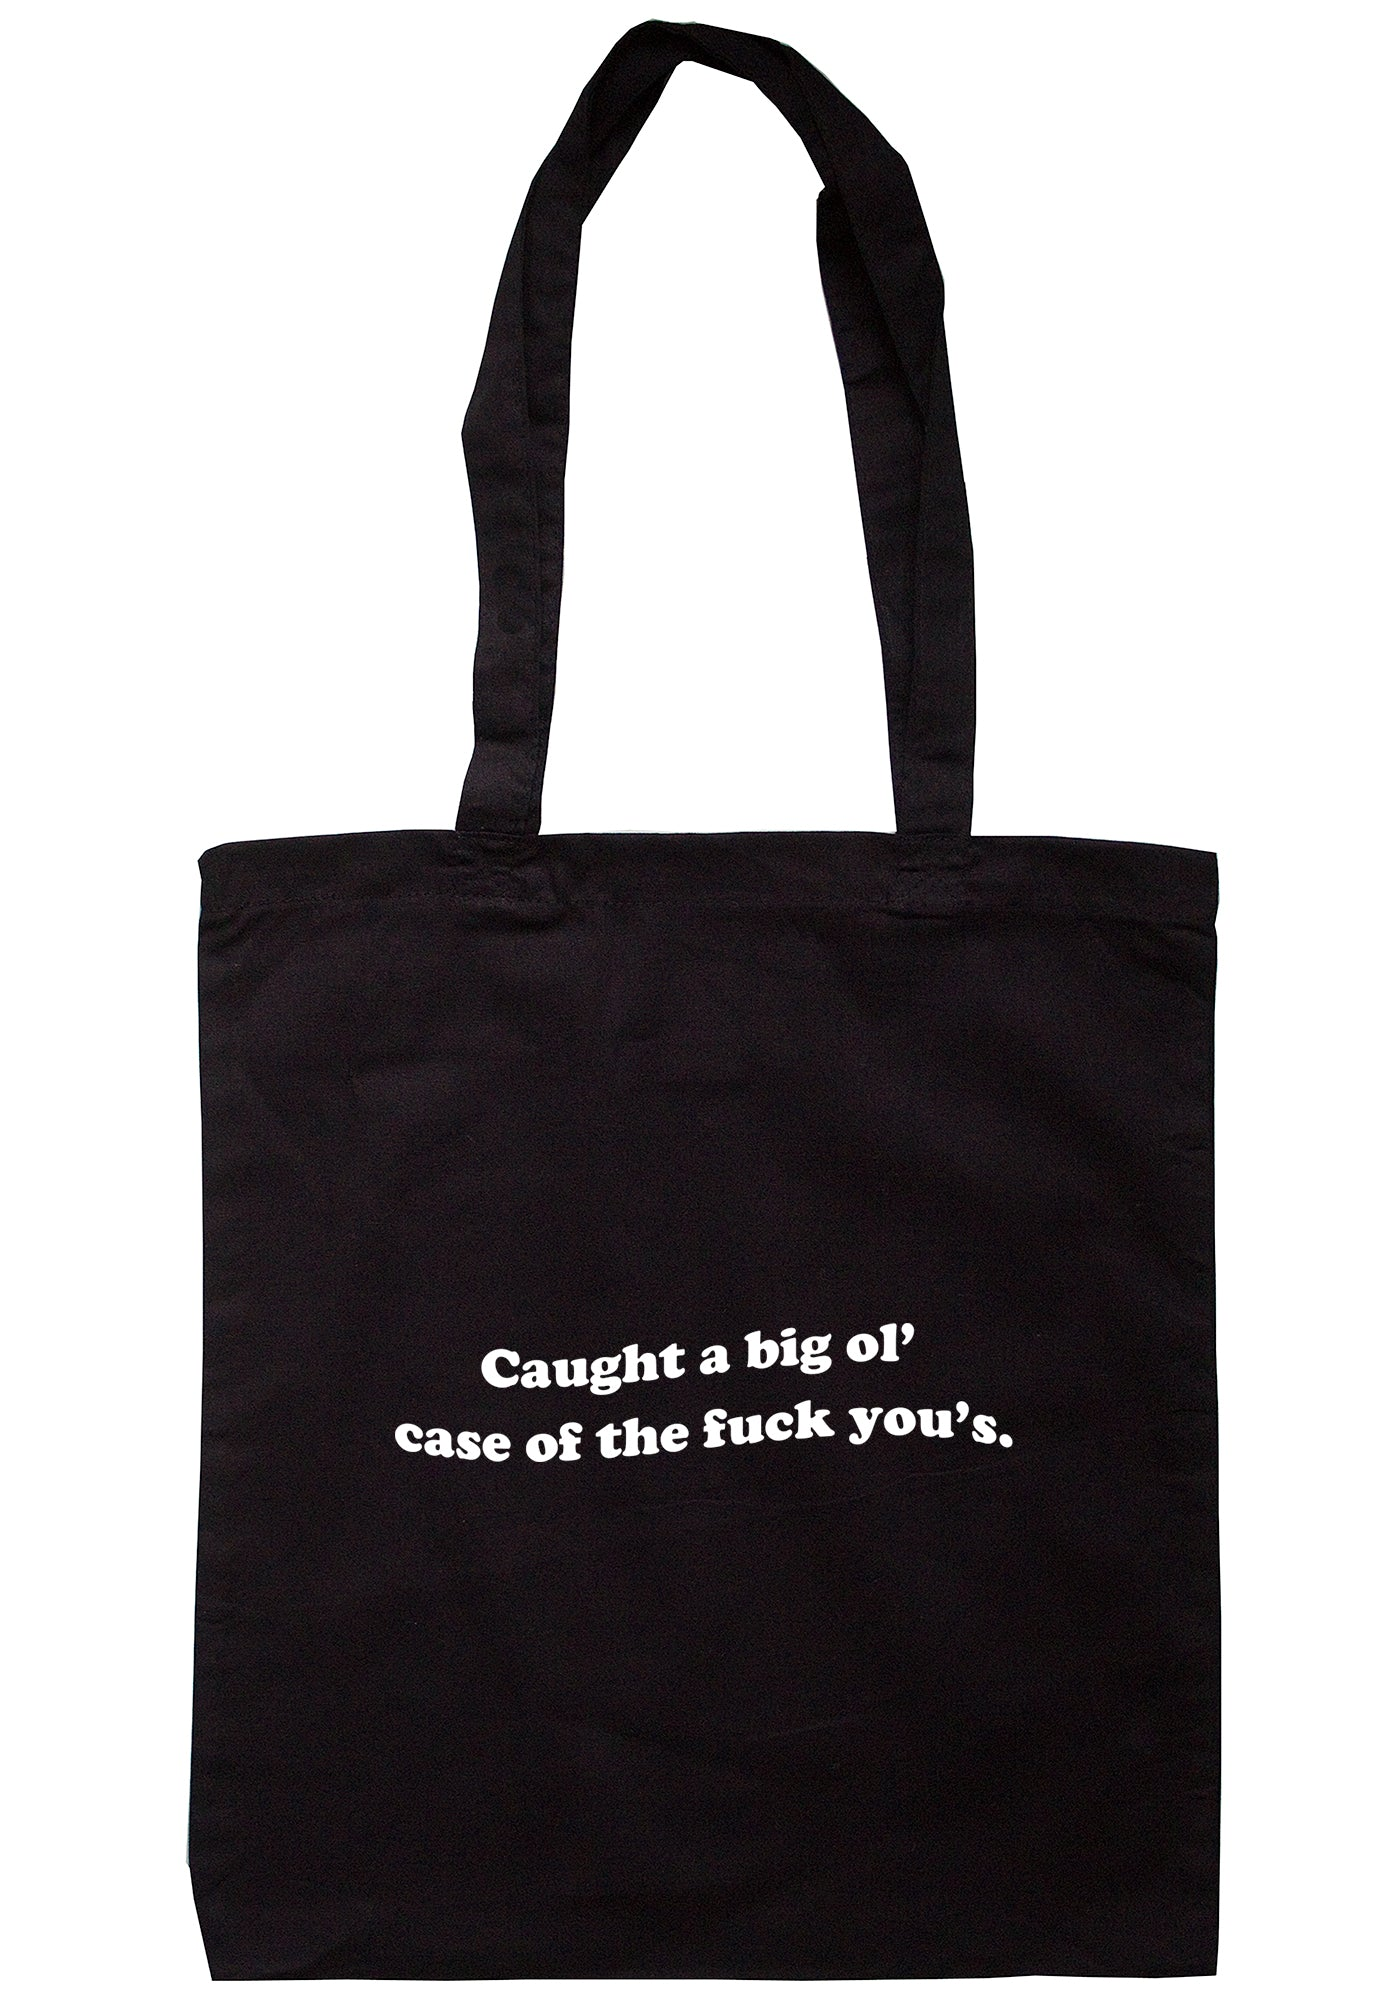 Caught A Big Ol' Case Of The Fuck You's Tote Bag S1055 - Illustrated Identity Ltd.